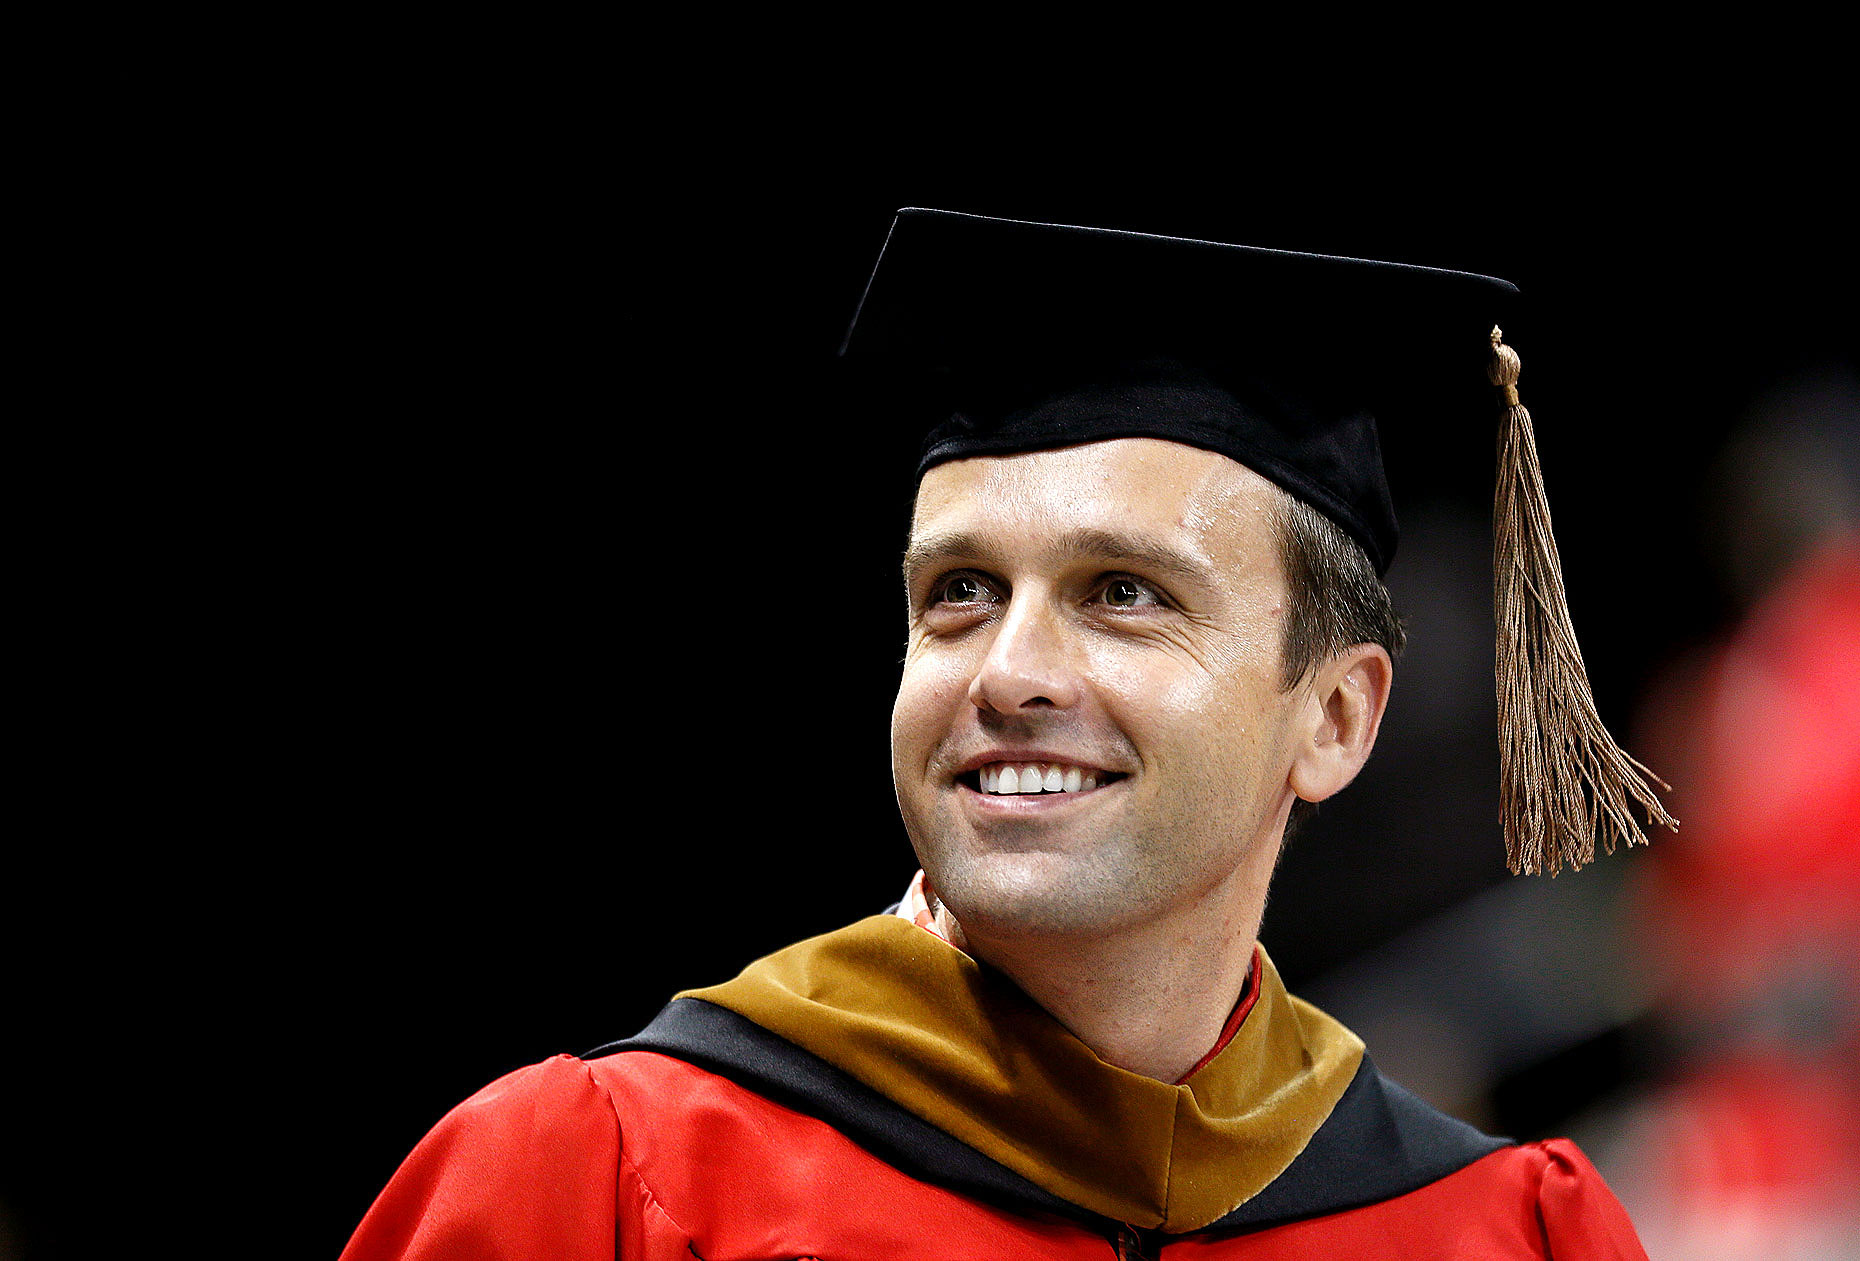 A Boston University MBA graduate searches the crowd for his family.